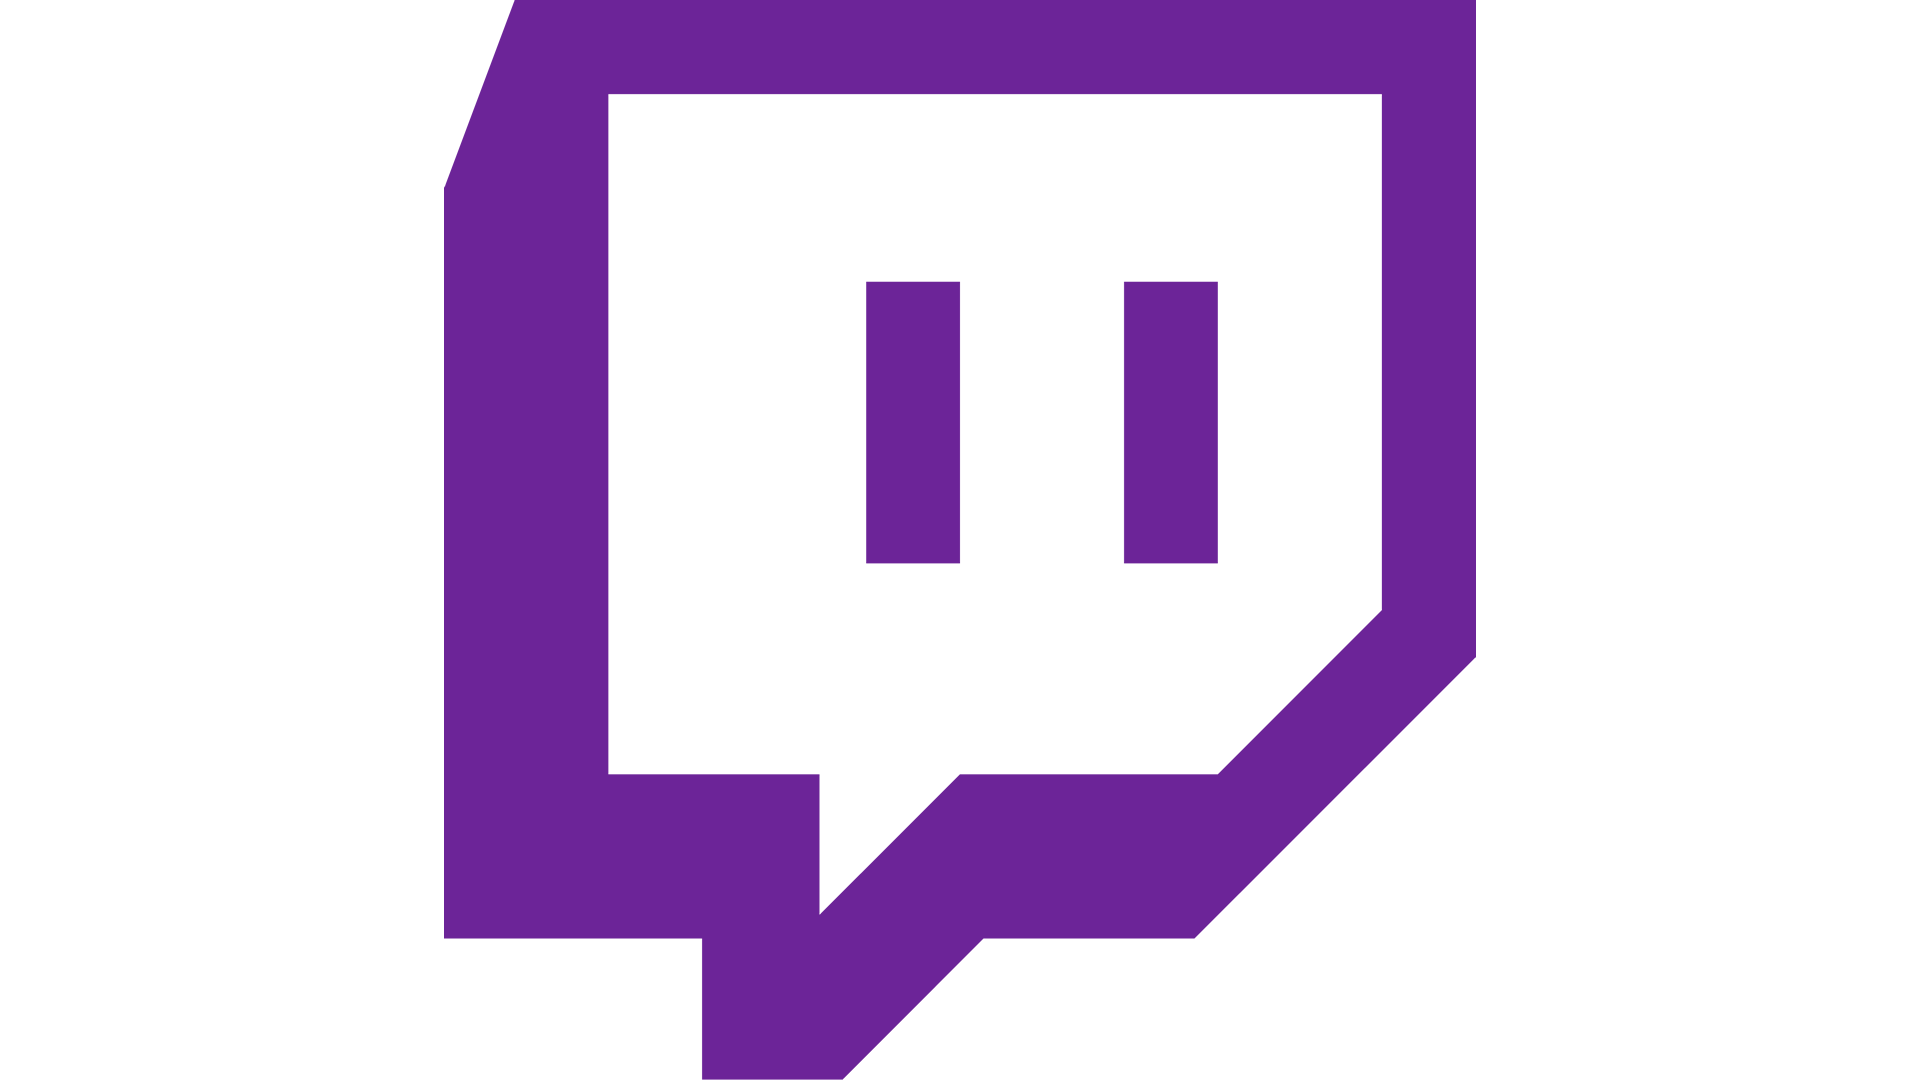 twitch app logo png